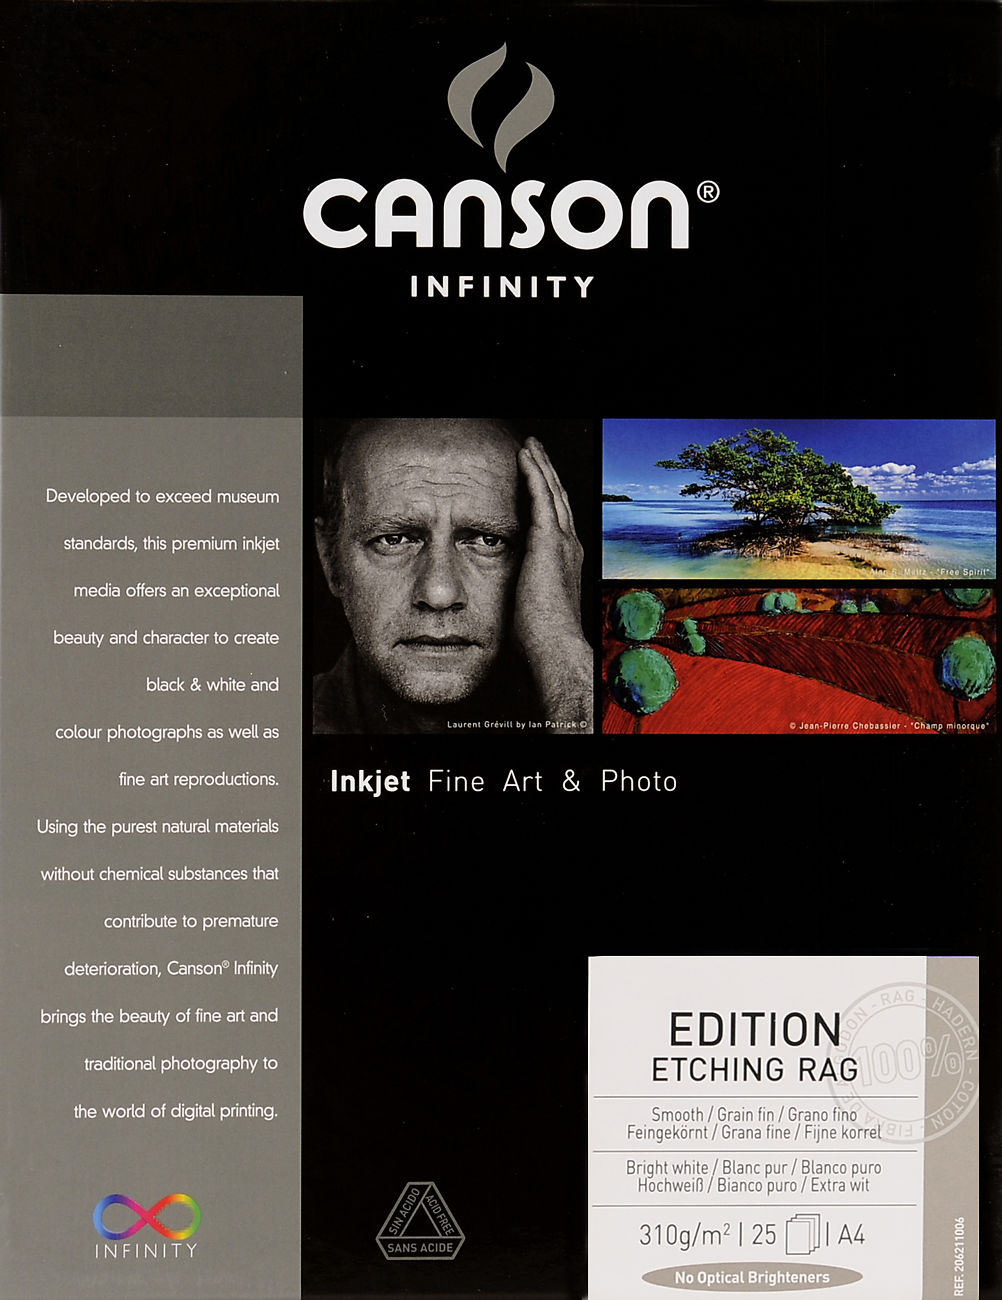 Canson Infinity Edition Etching Rag 310gsm Image